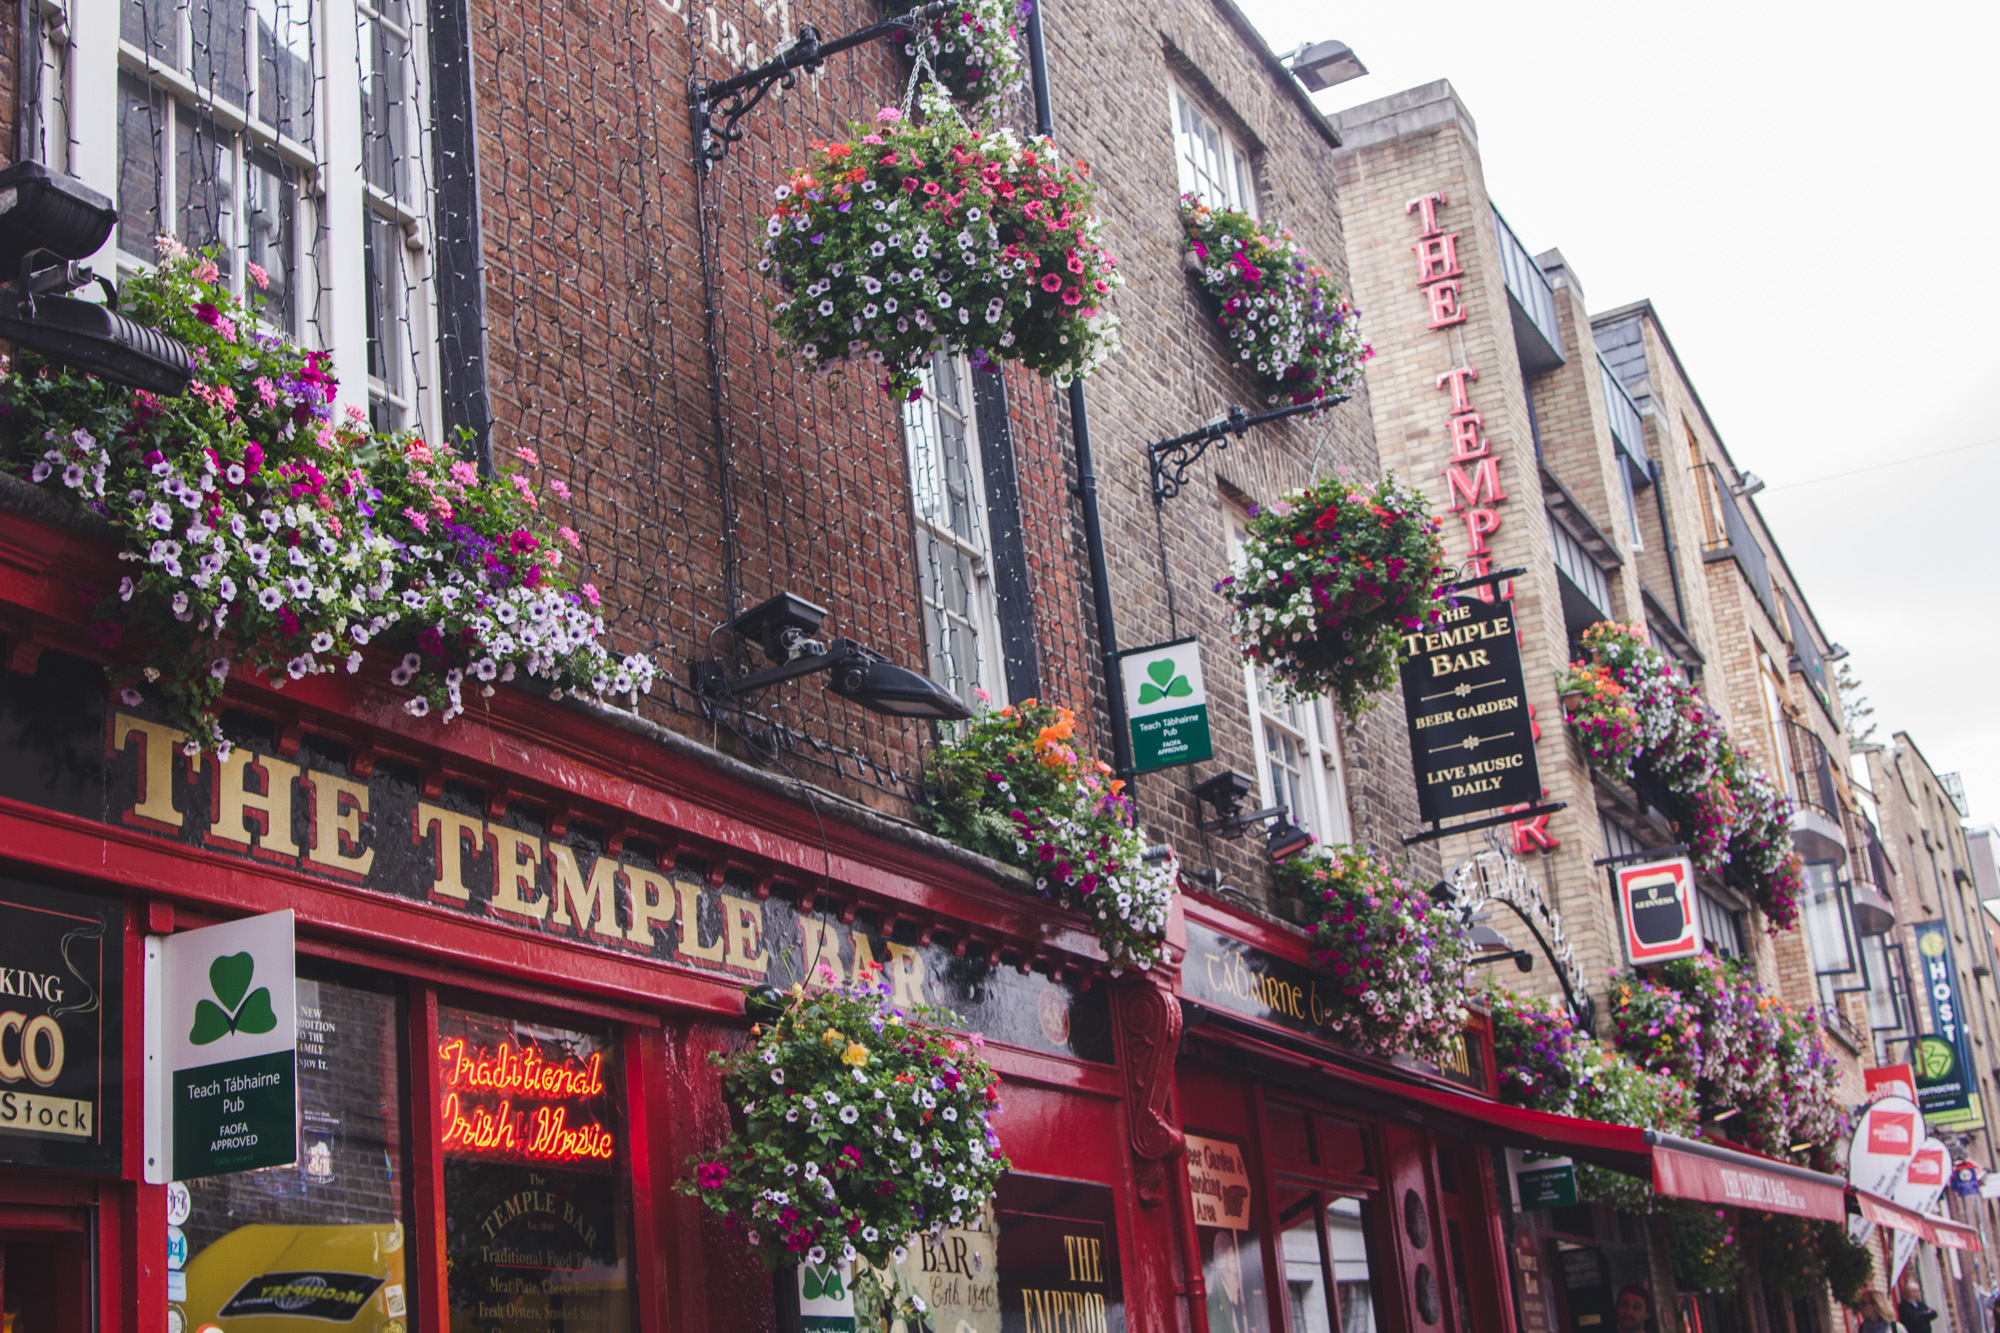 Temple Bar in Dublin, Ireland is full of brick bars and flower pots